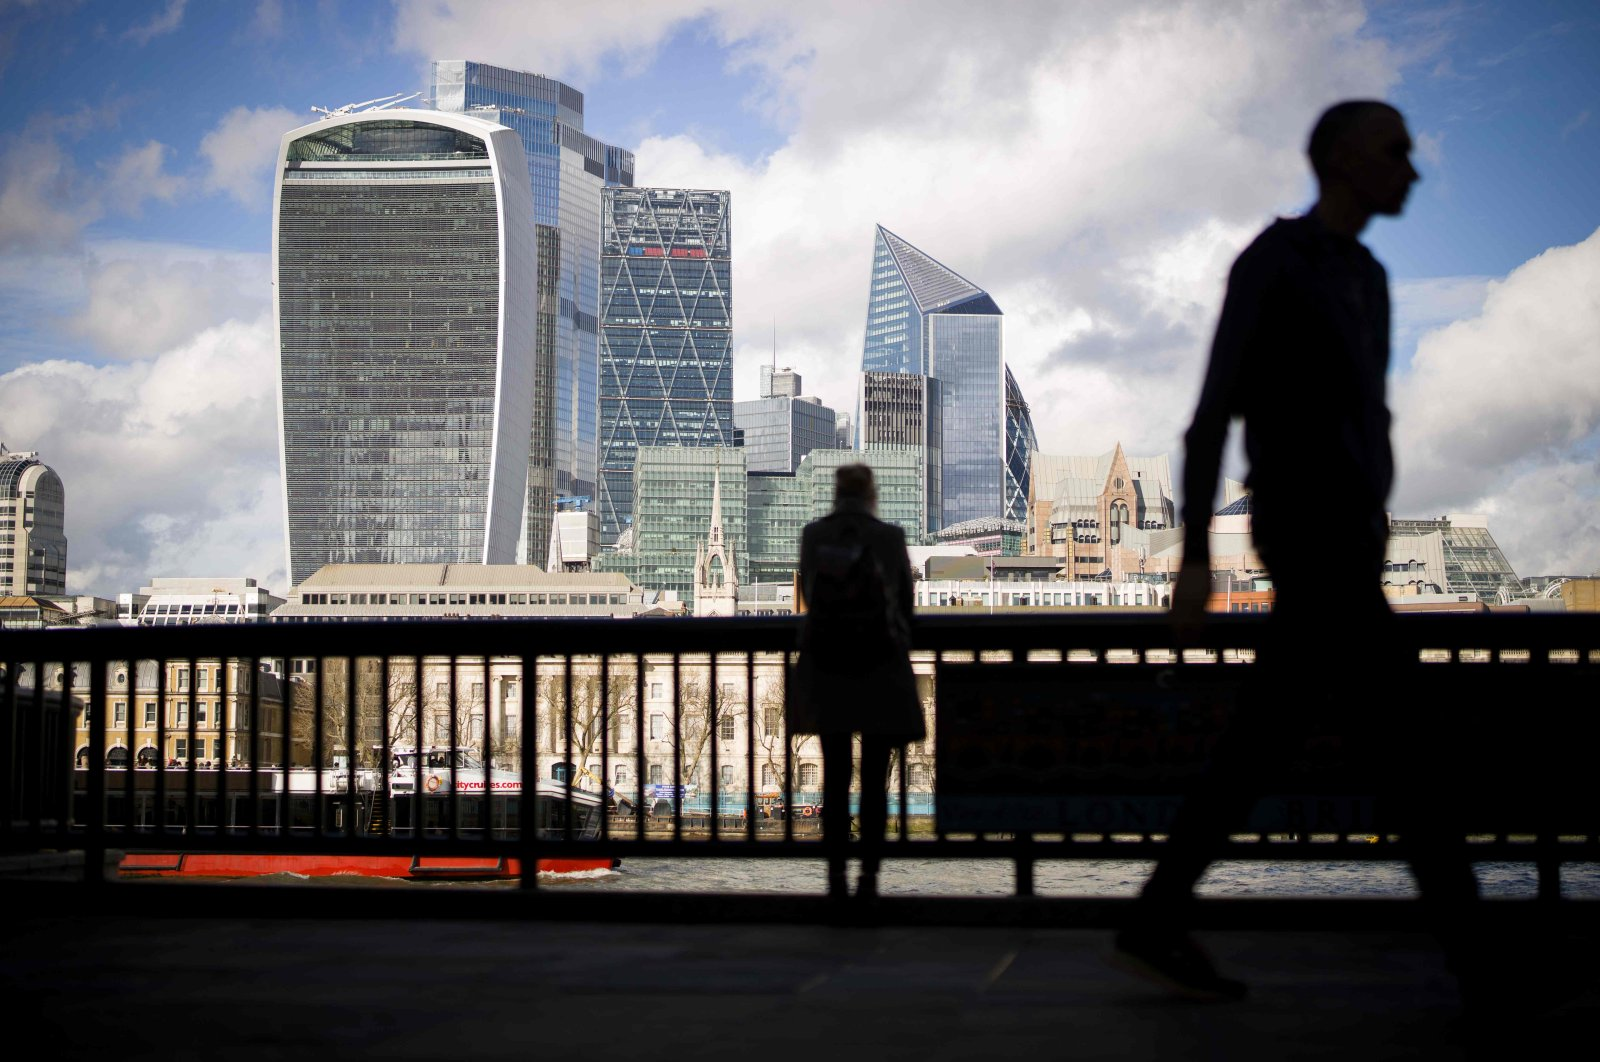 Pedestrians walk by with the towers of the City of London in the background in London, March 11, 2020. (AFP Photo)